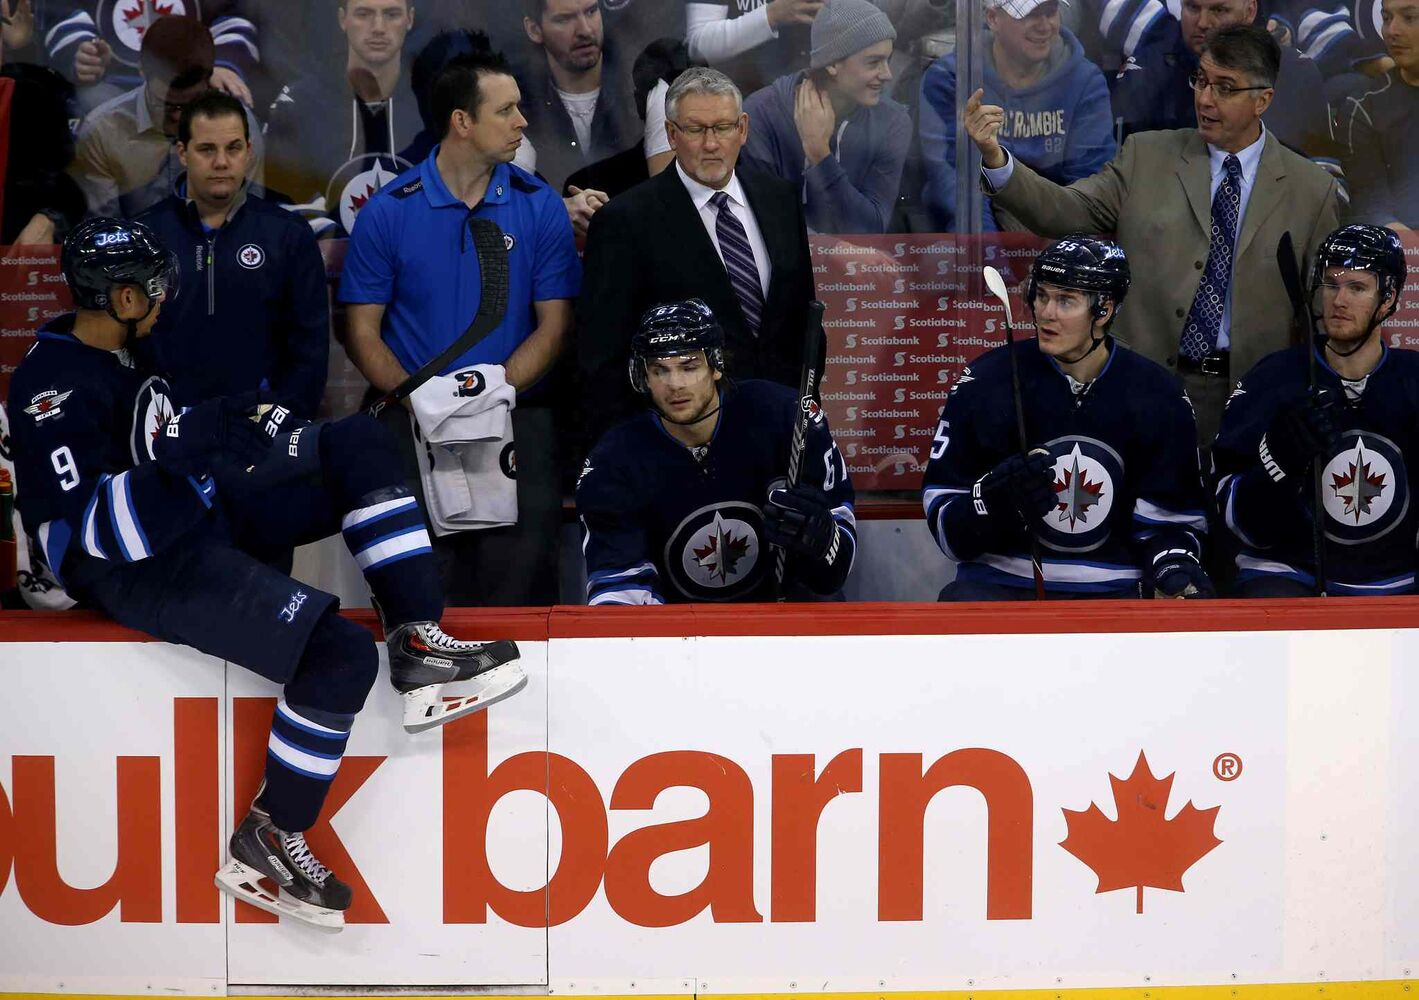 Winnipeg Jets' Evander Kane (left) listens to instructions from Winnipeg Jets head coach Claude Noel (top right) during the third period. (TREVOR HAGAN / WINNIPEG FREE PRESS)